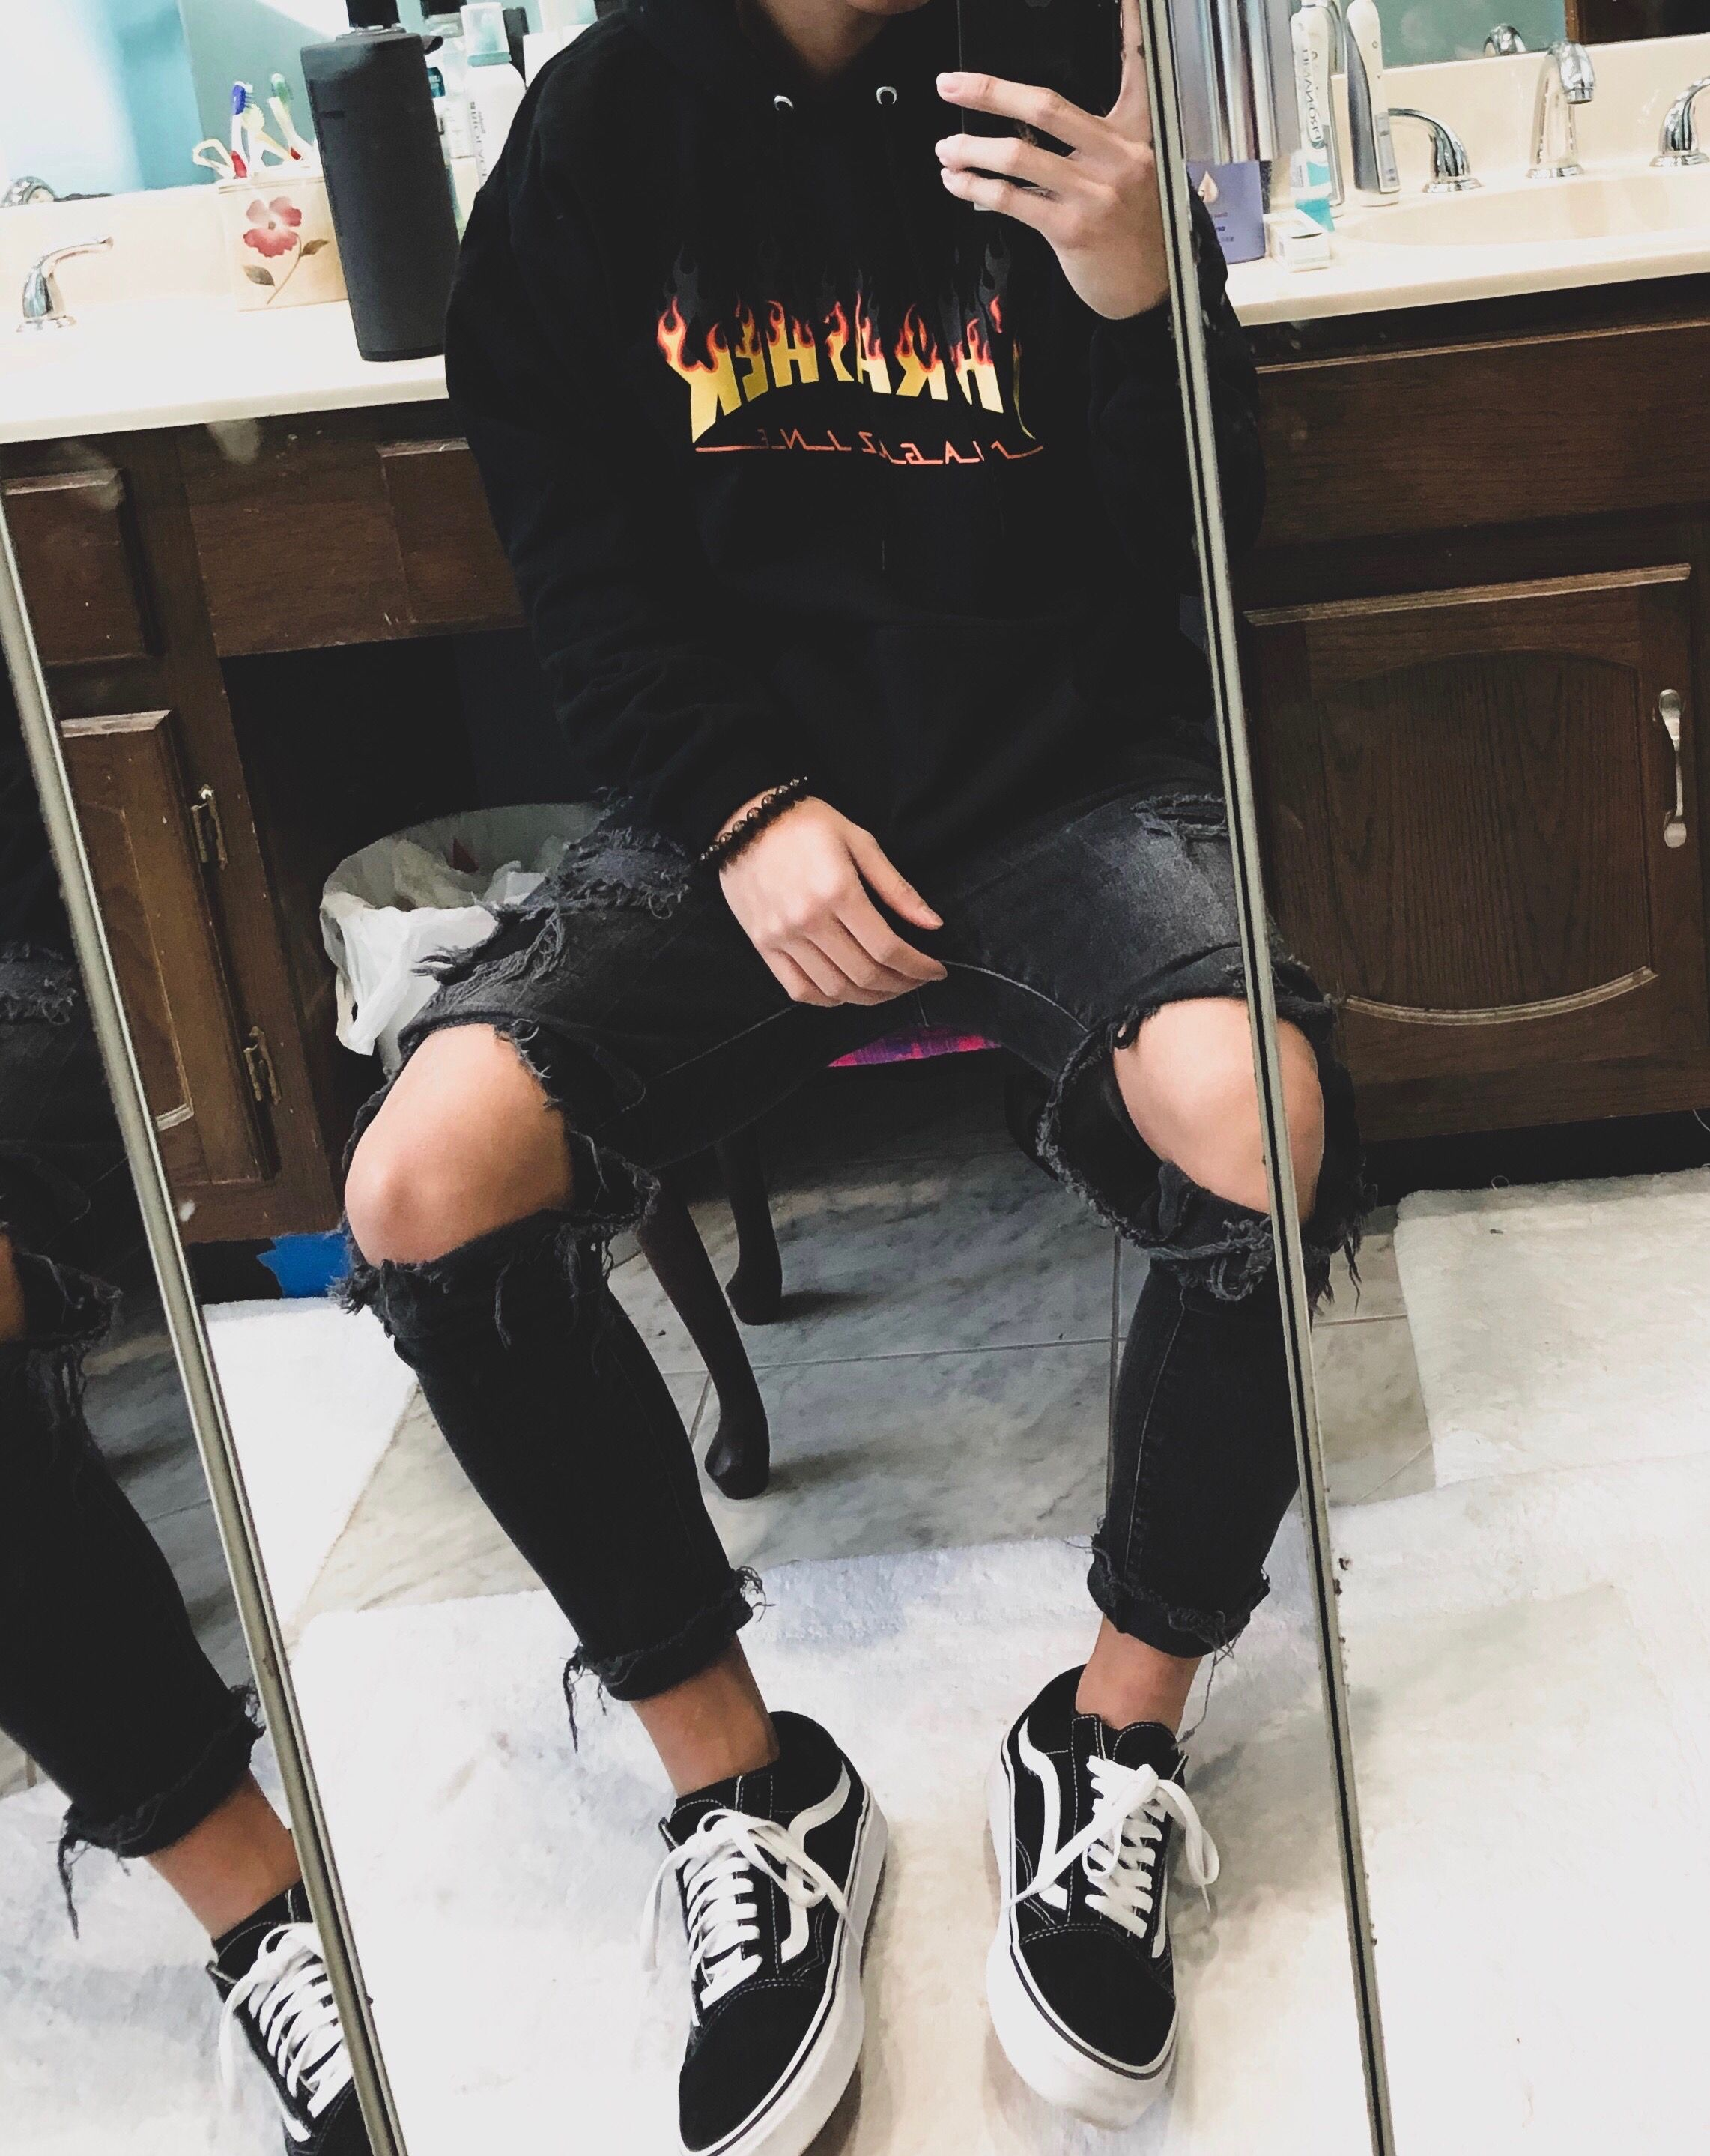 09644e9654 Basic fit with Black and White Old Schools, black ripped jeans & black  thrasher hoodie.